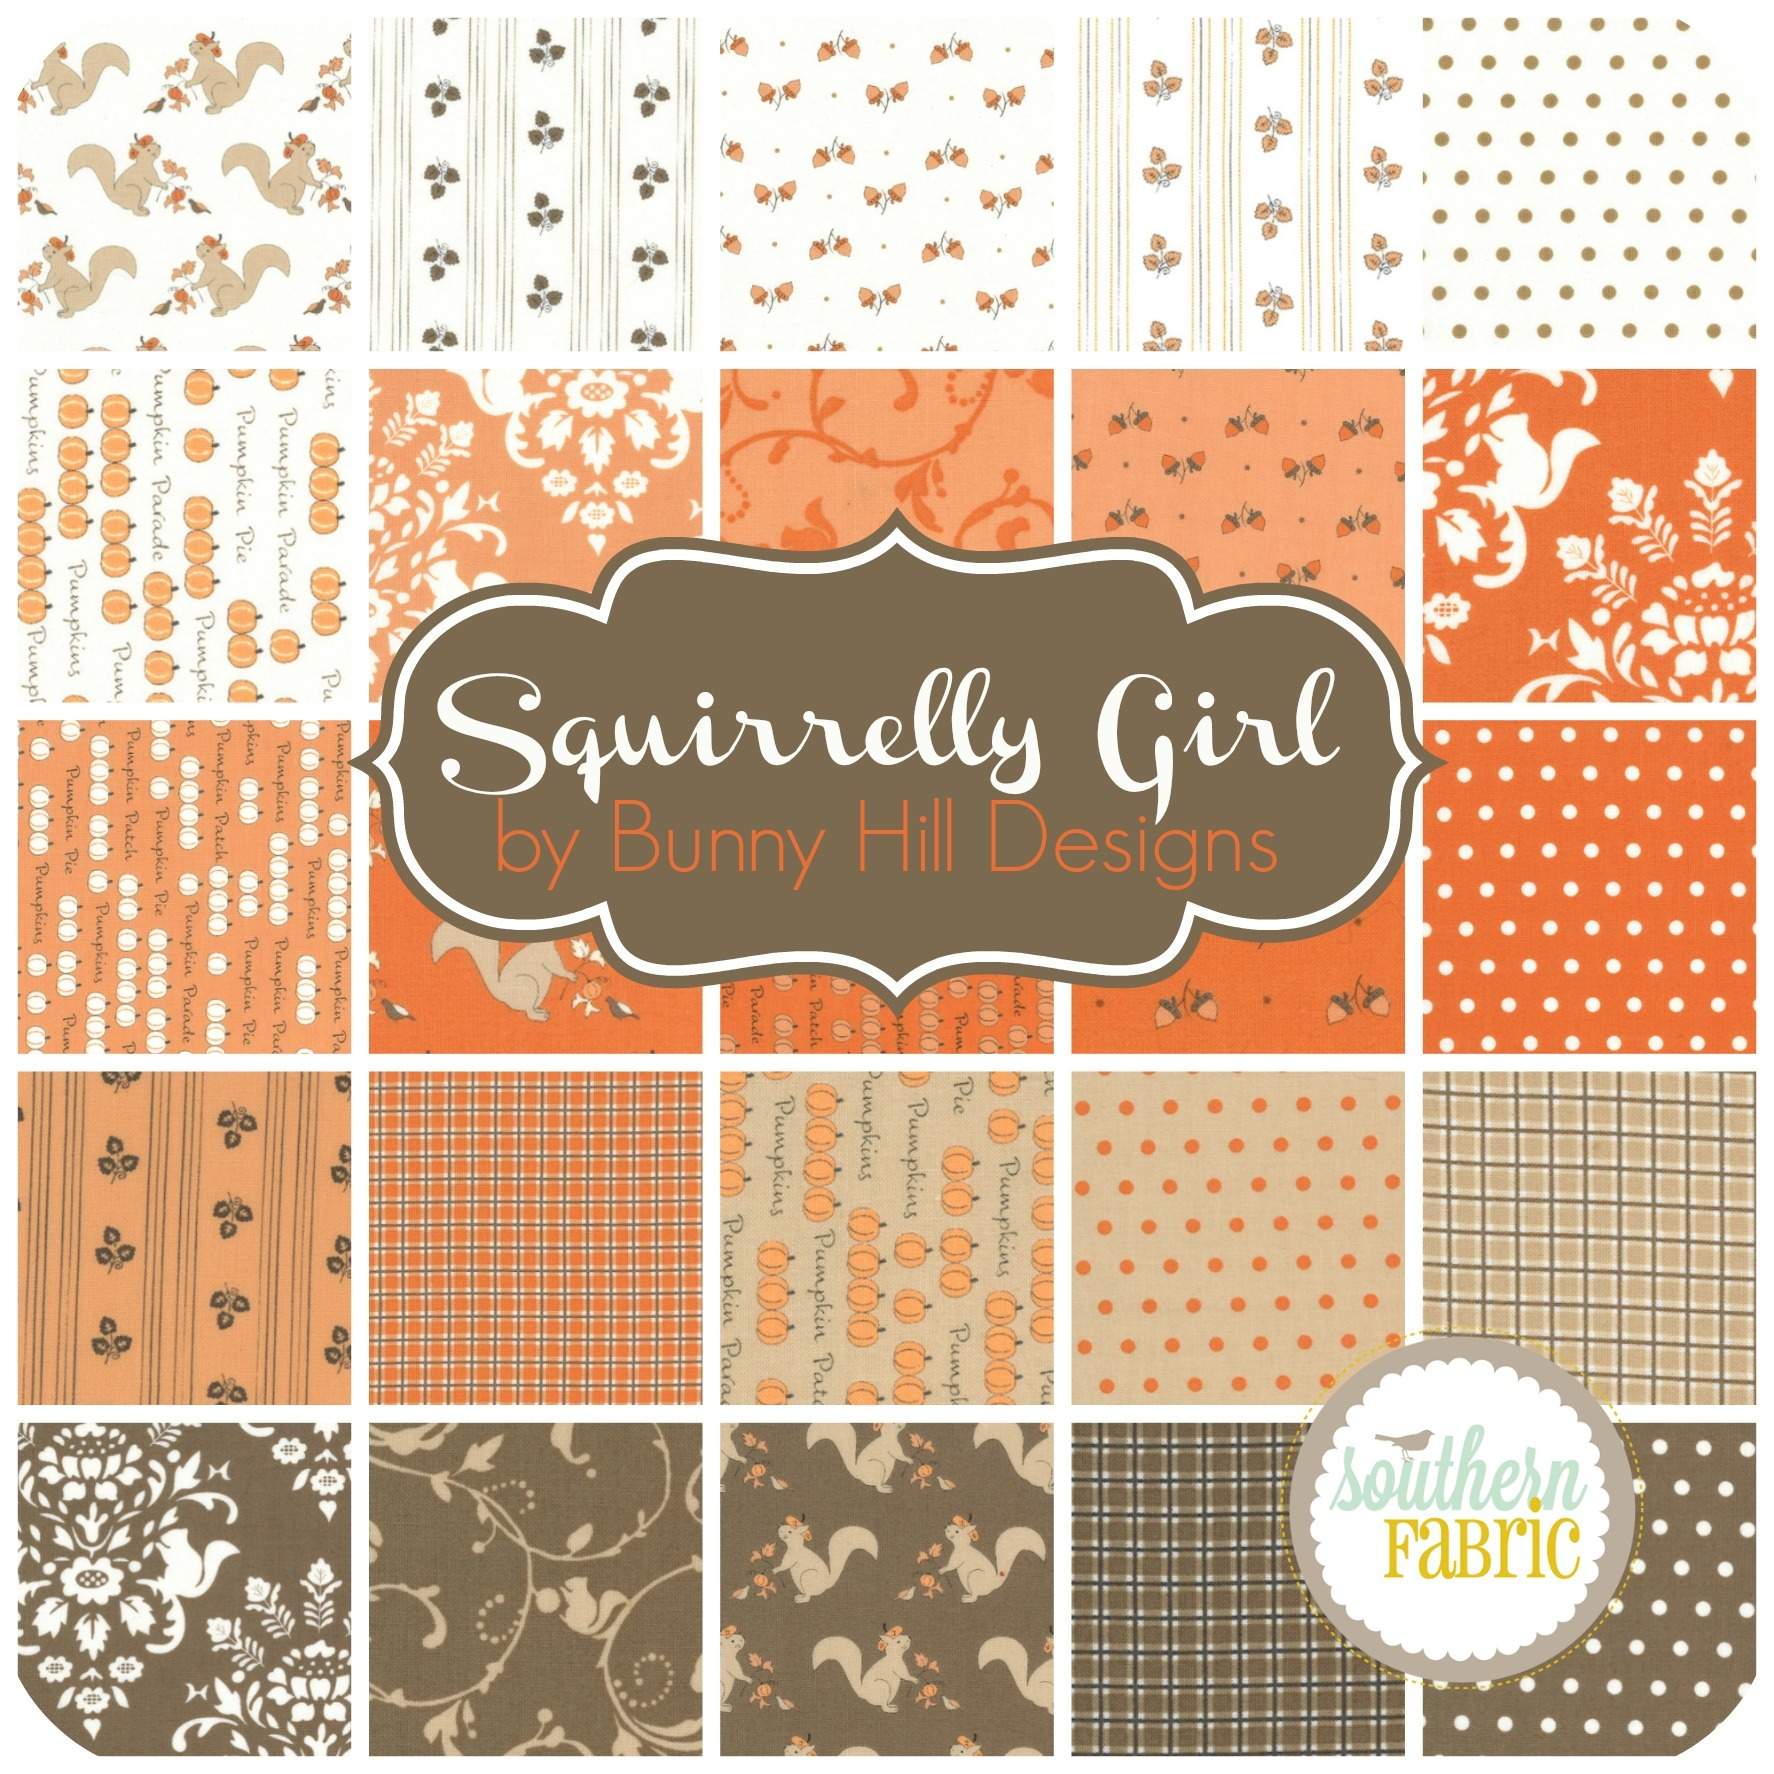 Squirrelly Girl by Bunny Hill Designs